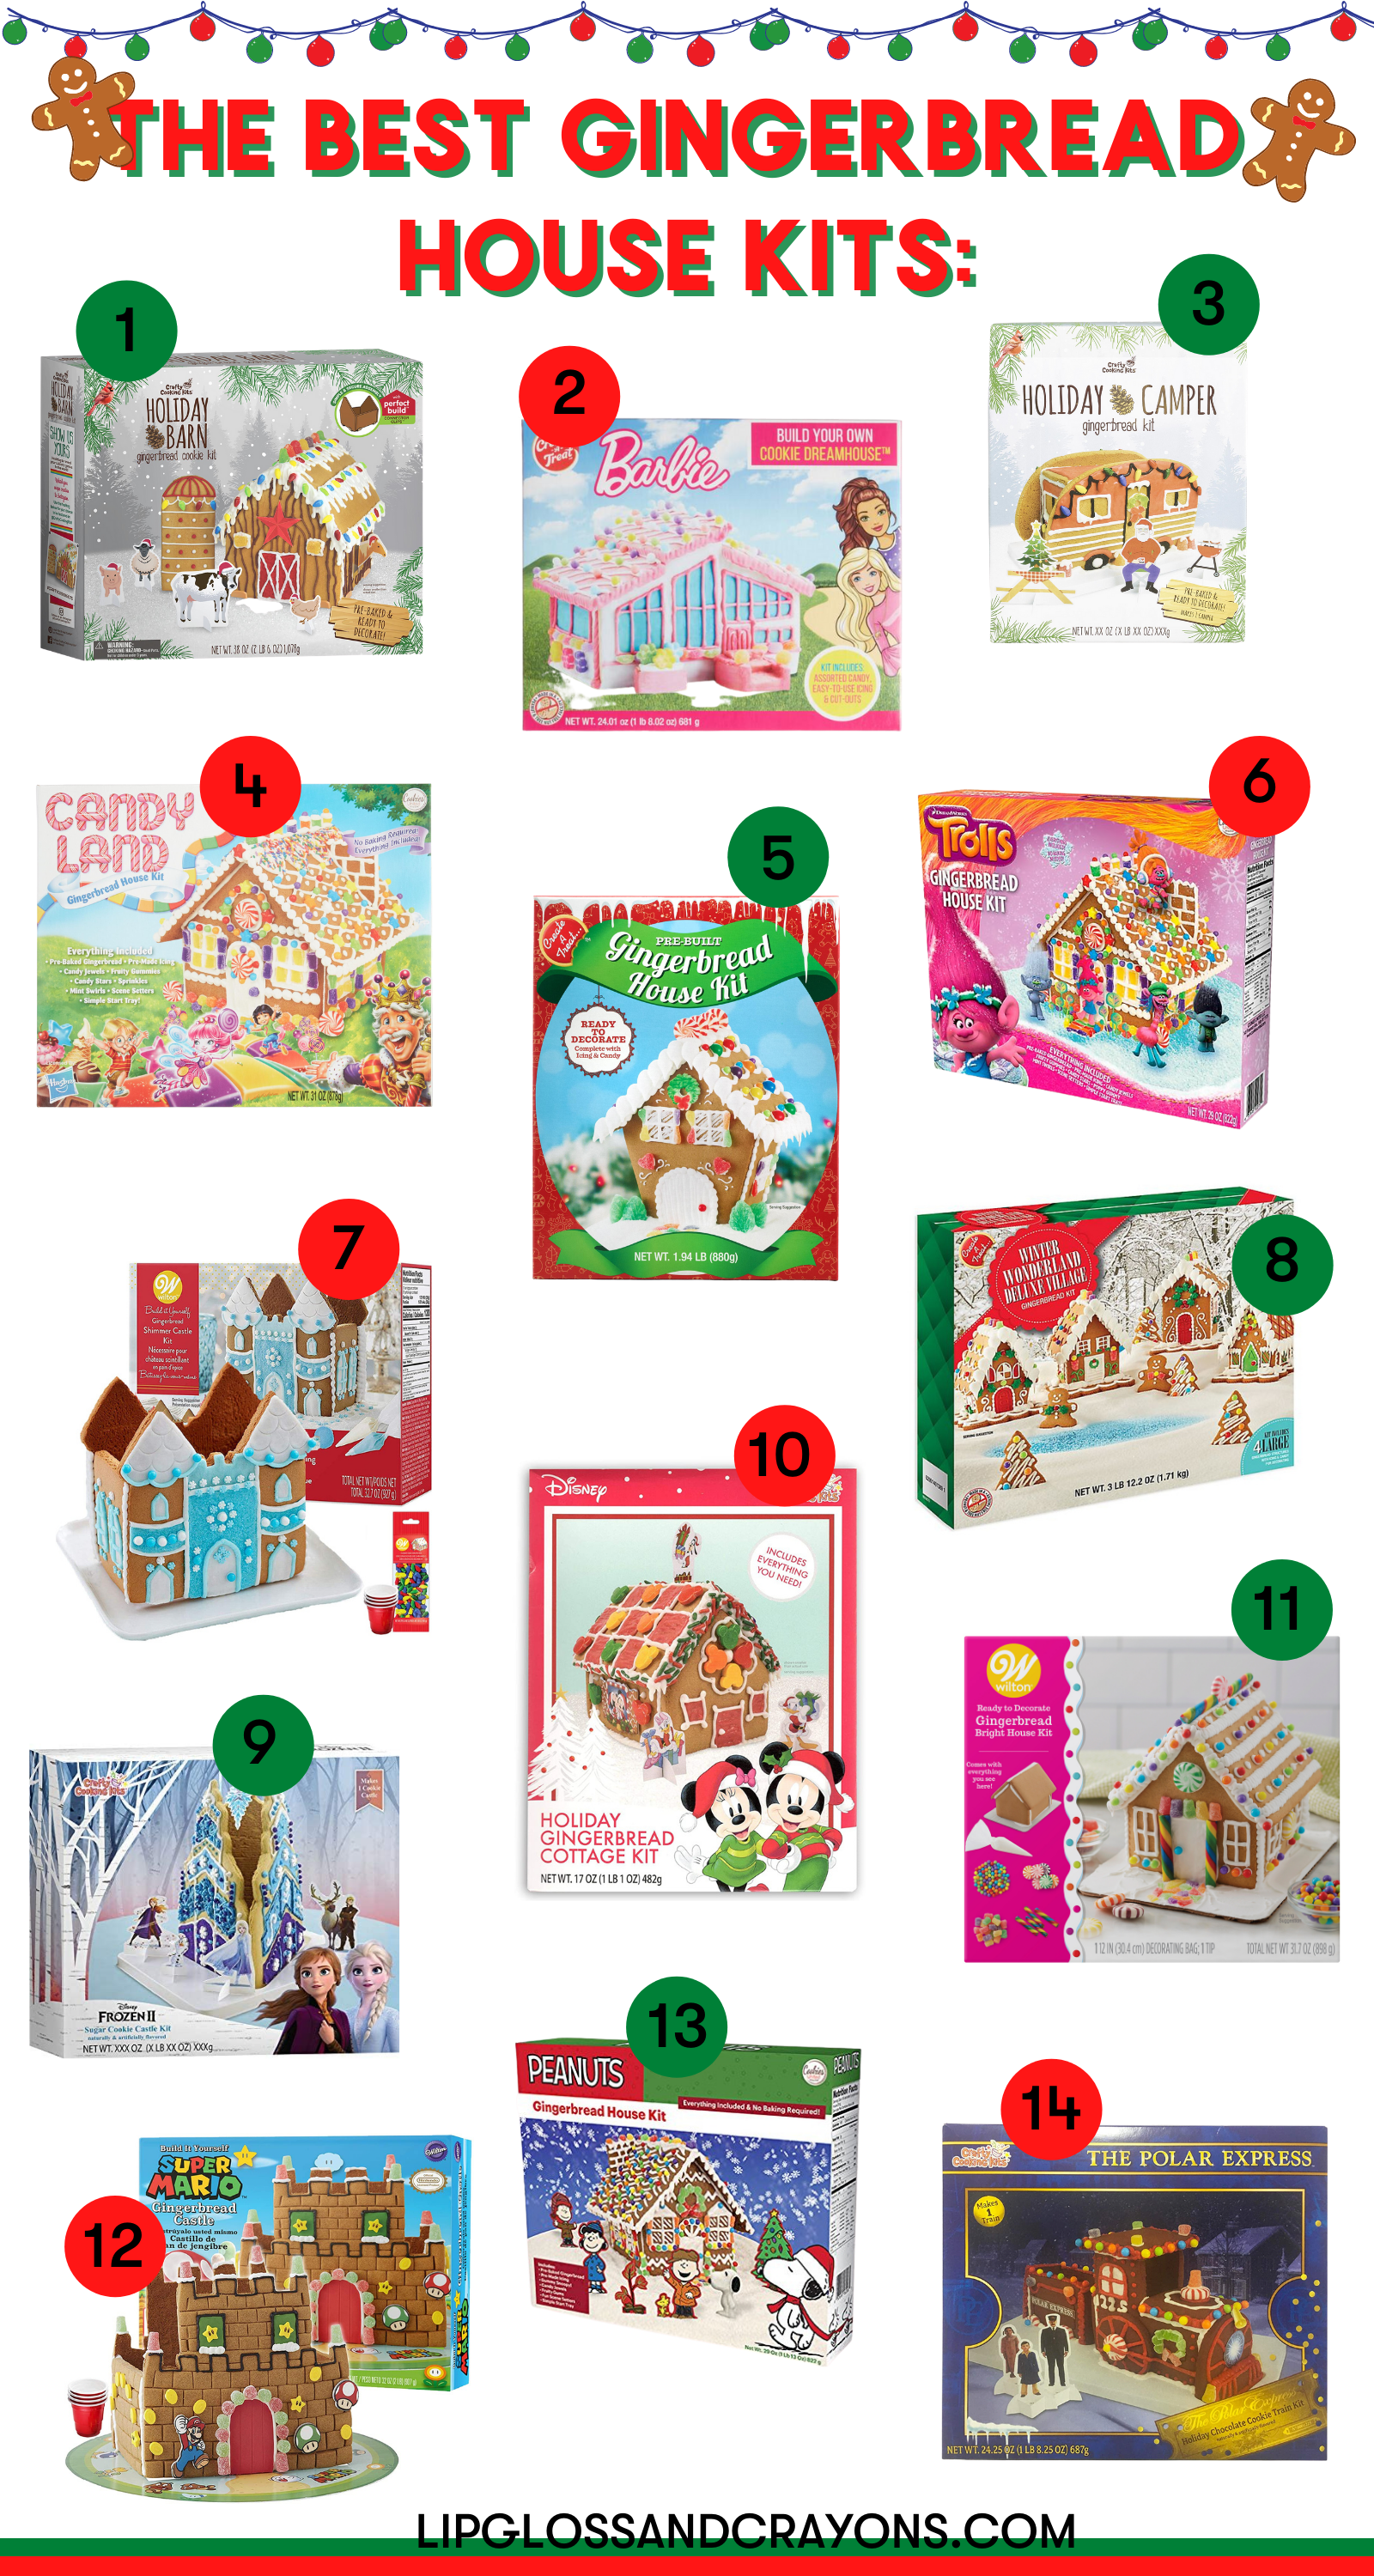 Looking for fun Christmas activities for kids? These are the best gingerbread house kits!